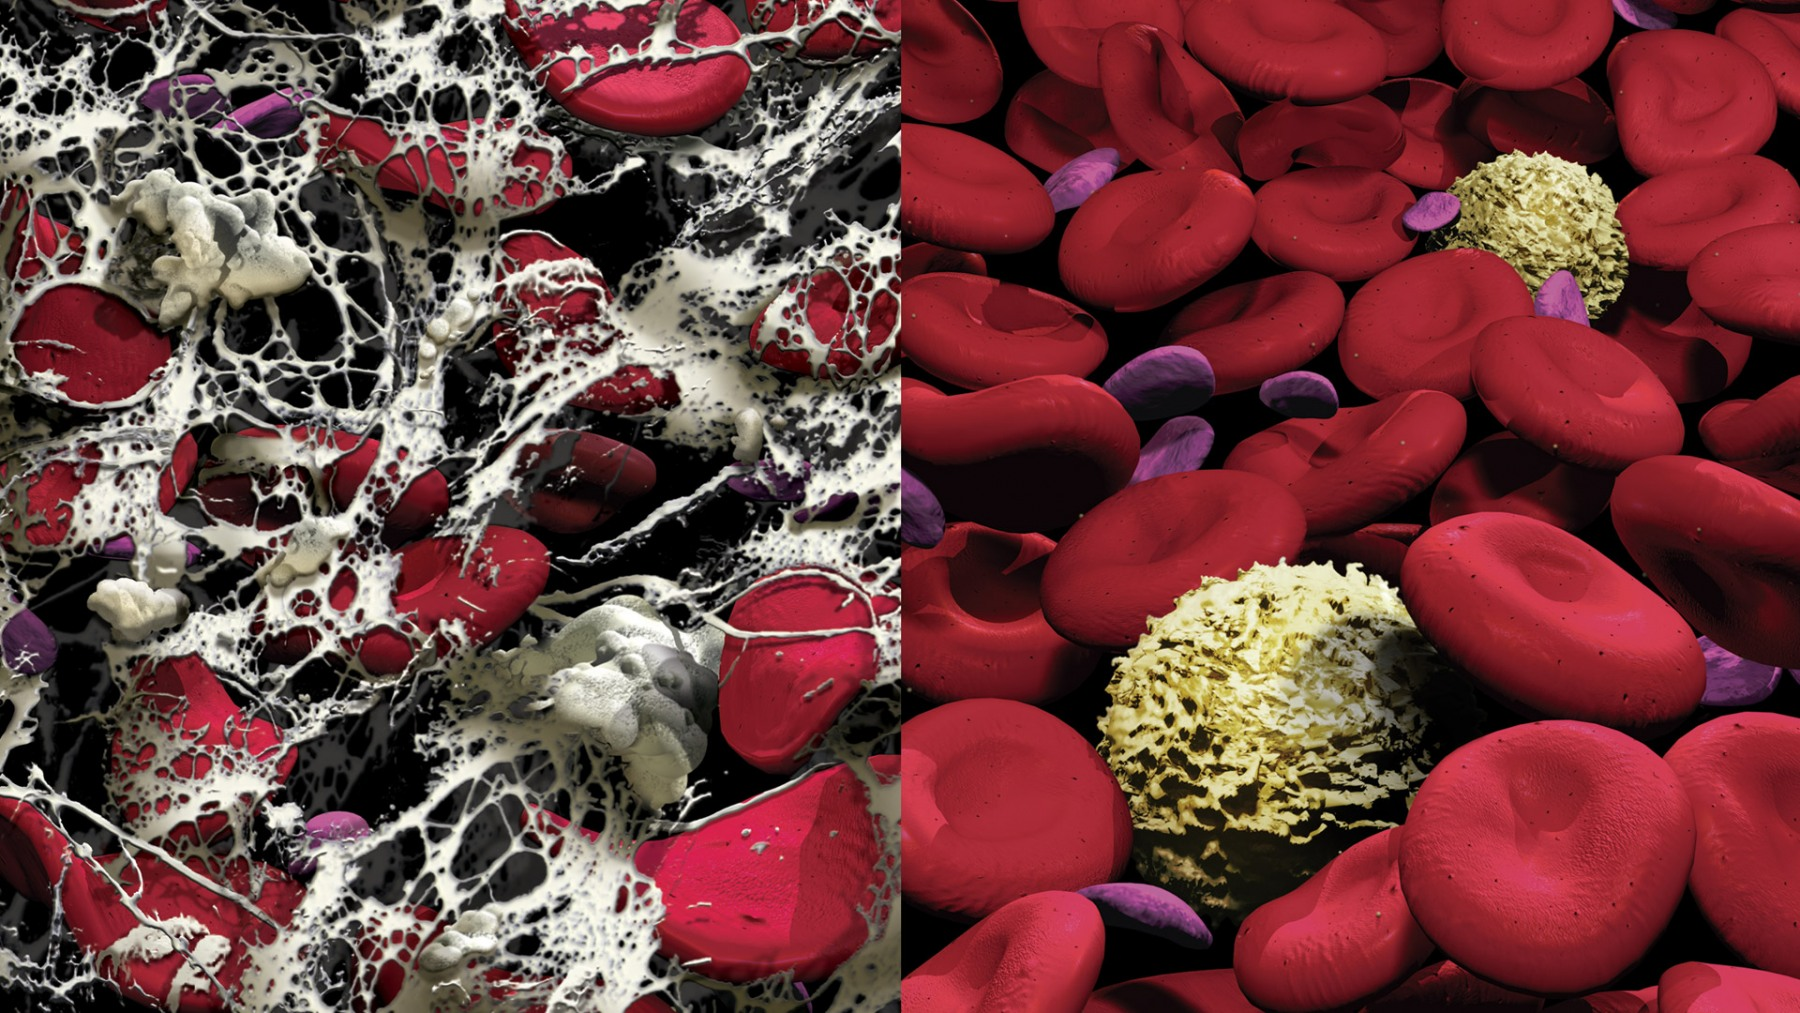 BLOOD CLOT & HEALTHY BLOOD CELL